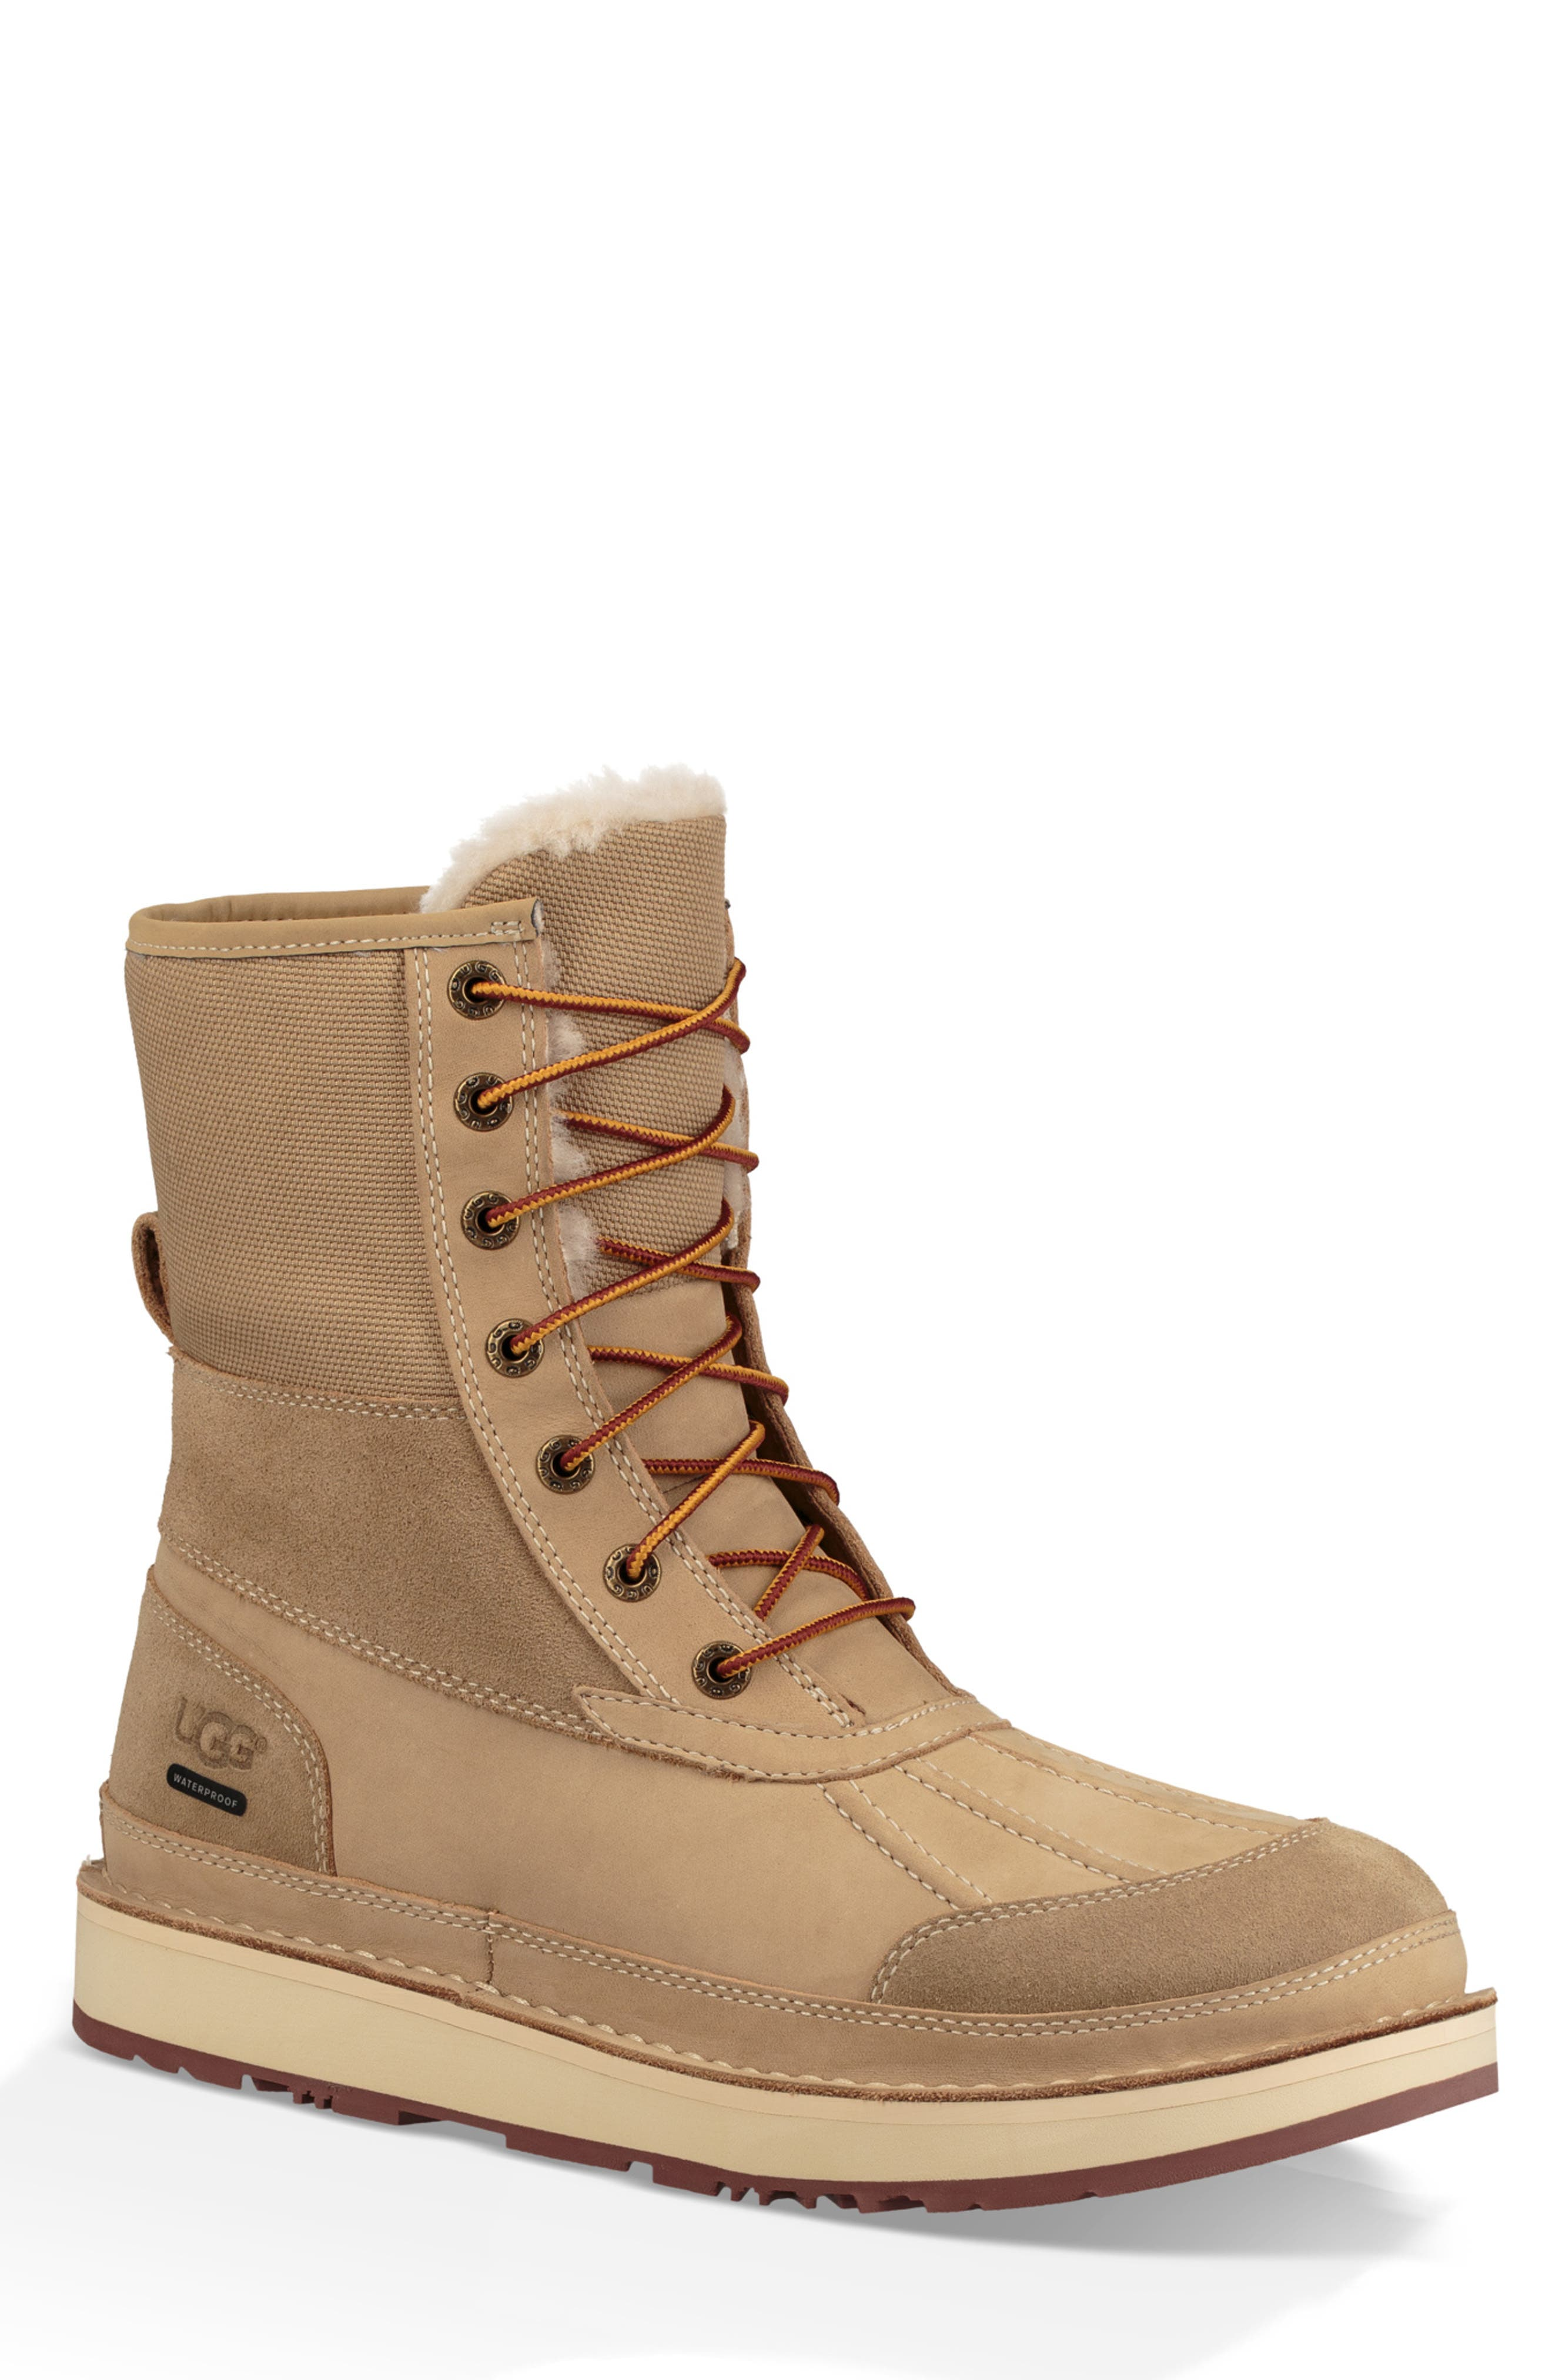 Ugg Avalanche Butte Waterproof Boot, Brown